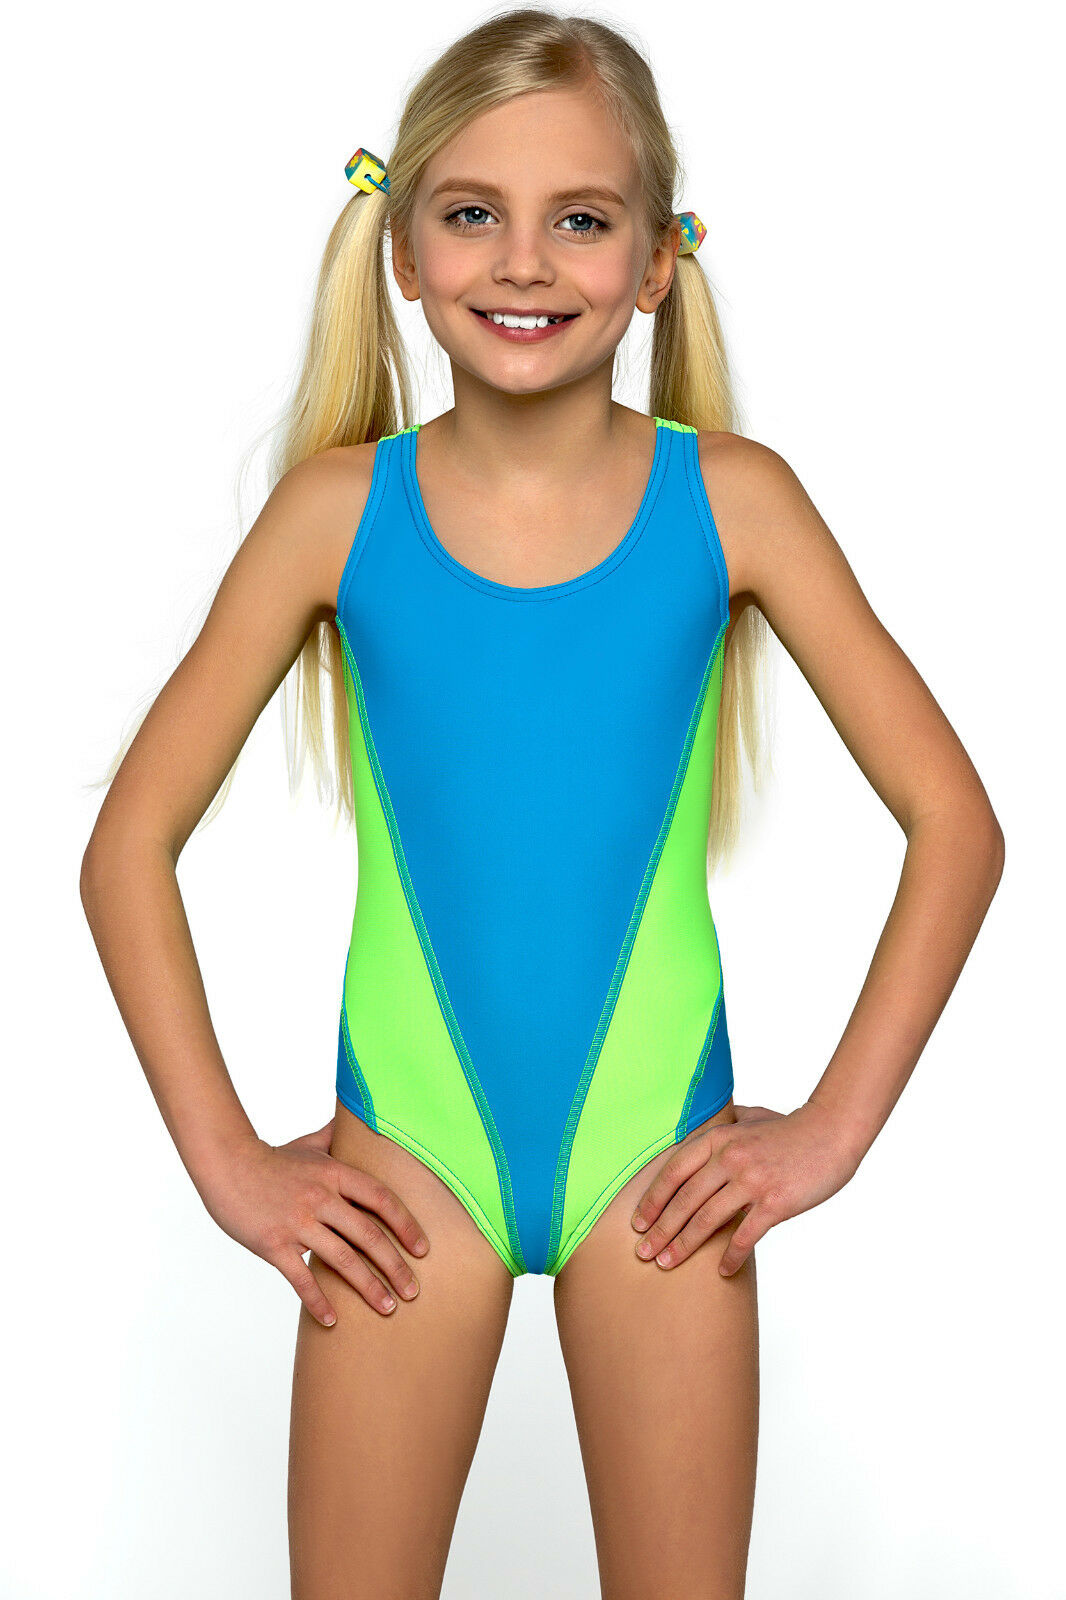 New One Piece Girls Sport Swimming Costume Swimwear Swimsuit Age 8 9 10 11 12 13  sc 1 st  eBay & New One Piece Girls Sport Swimming Costume Swimwear Swimsuit Age 8 9 ...